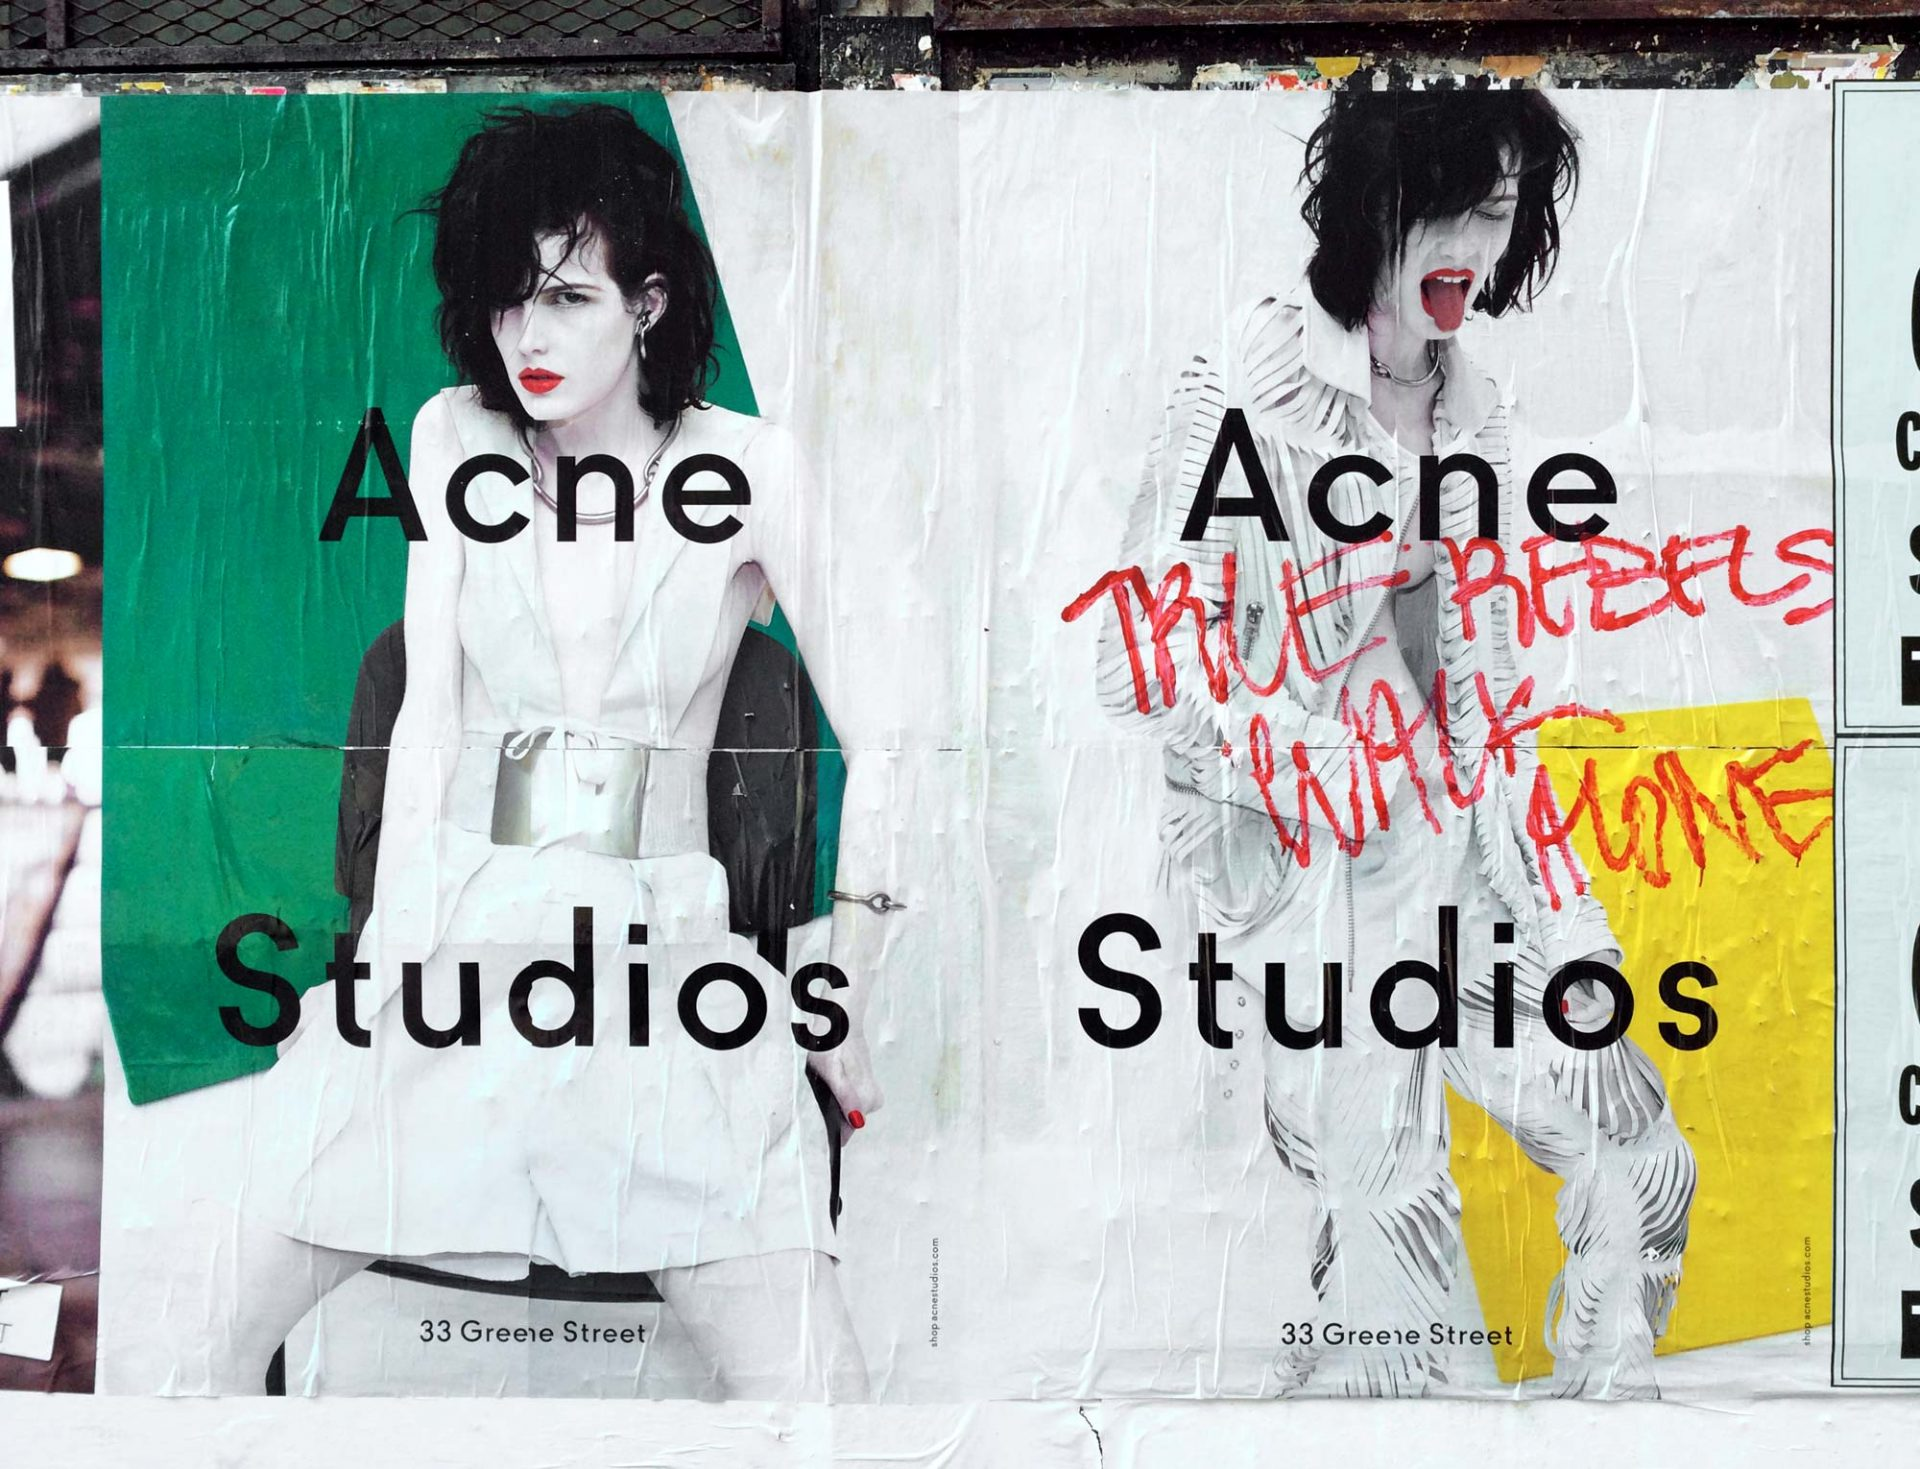 Acne Studios as seen in New York